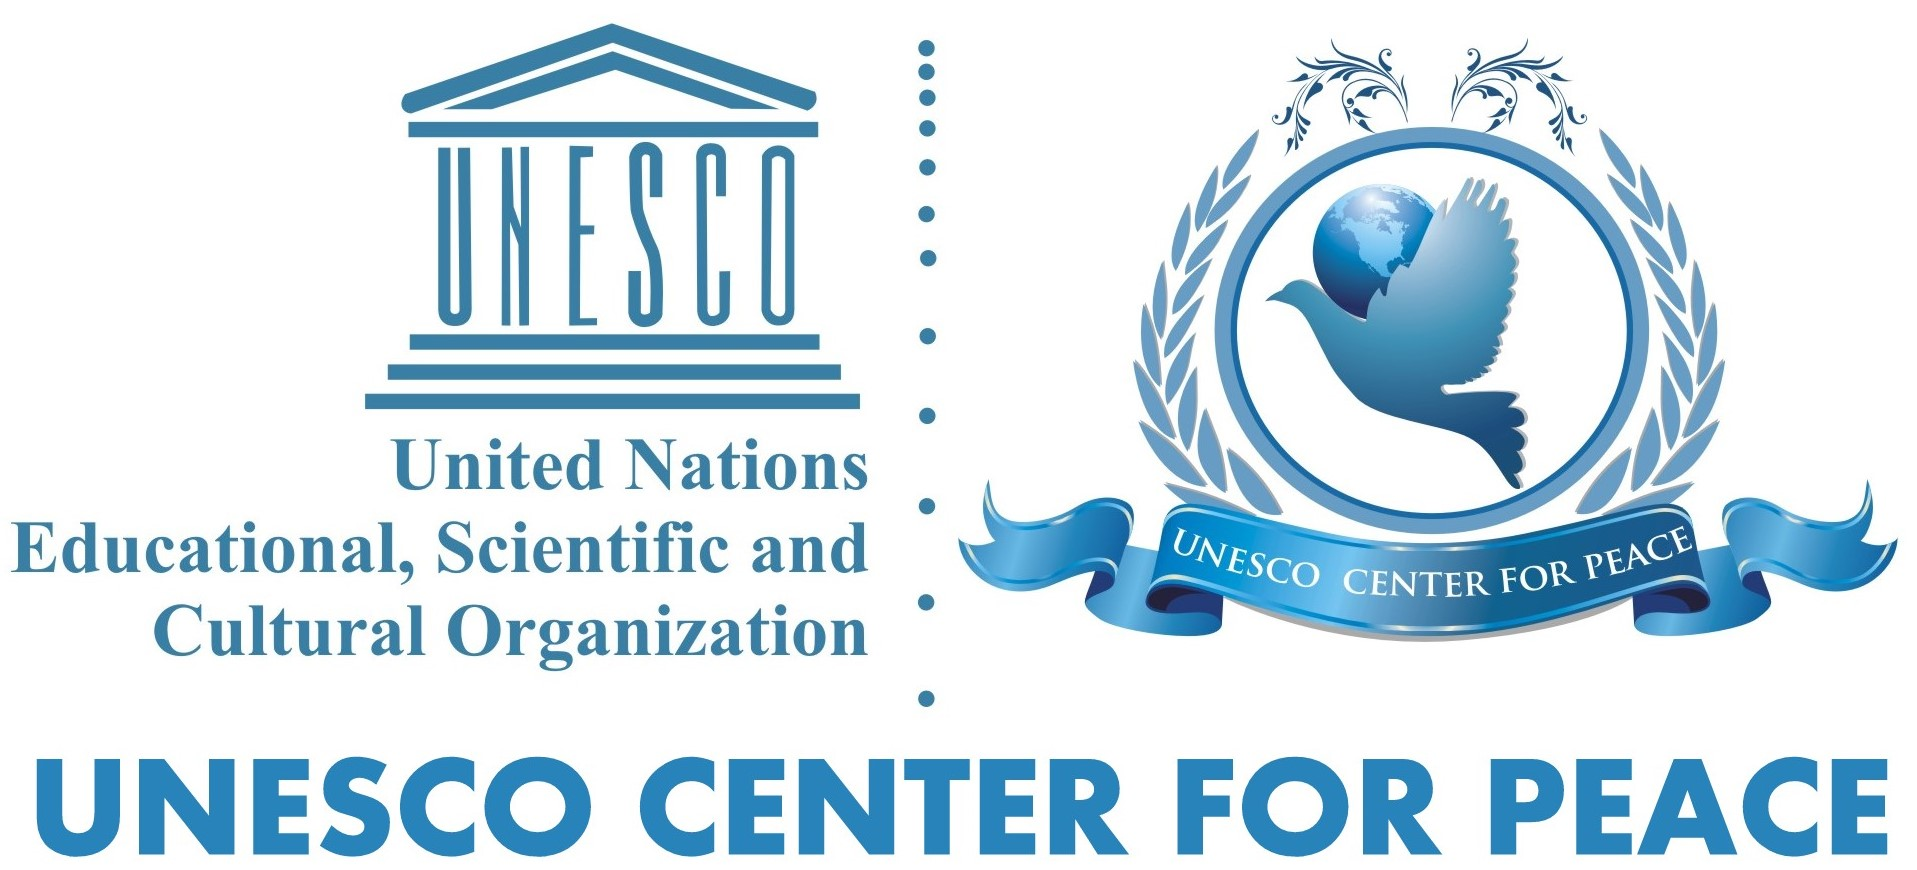 UNESCO Center for Peace